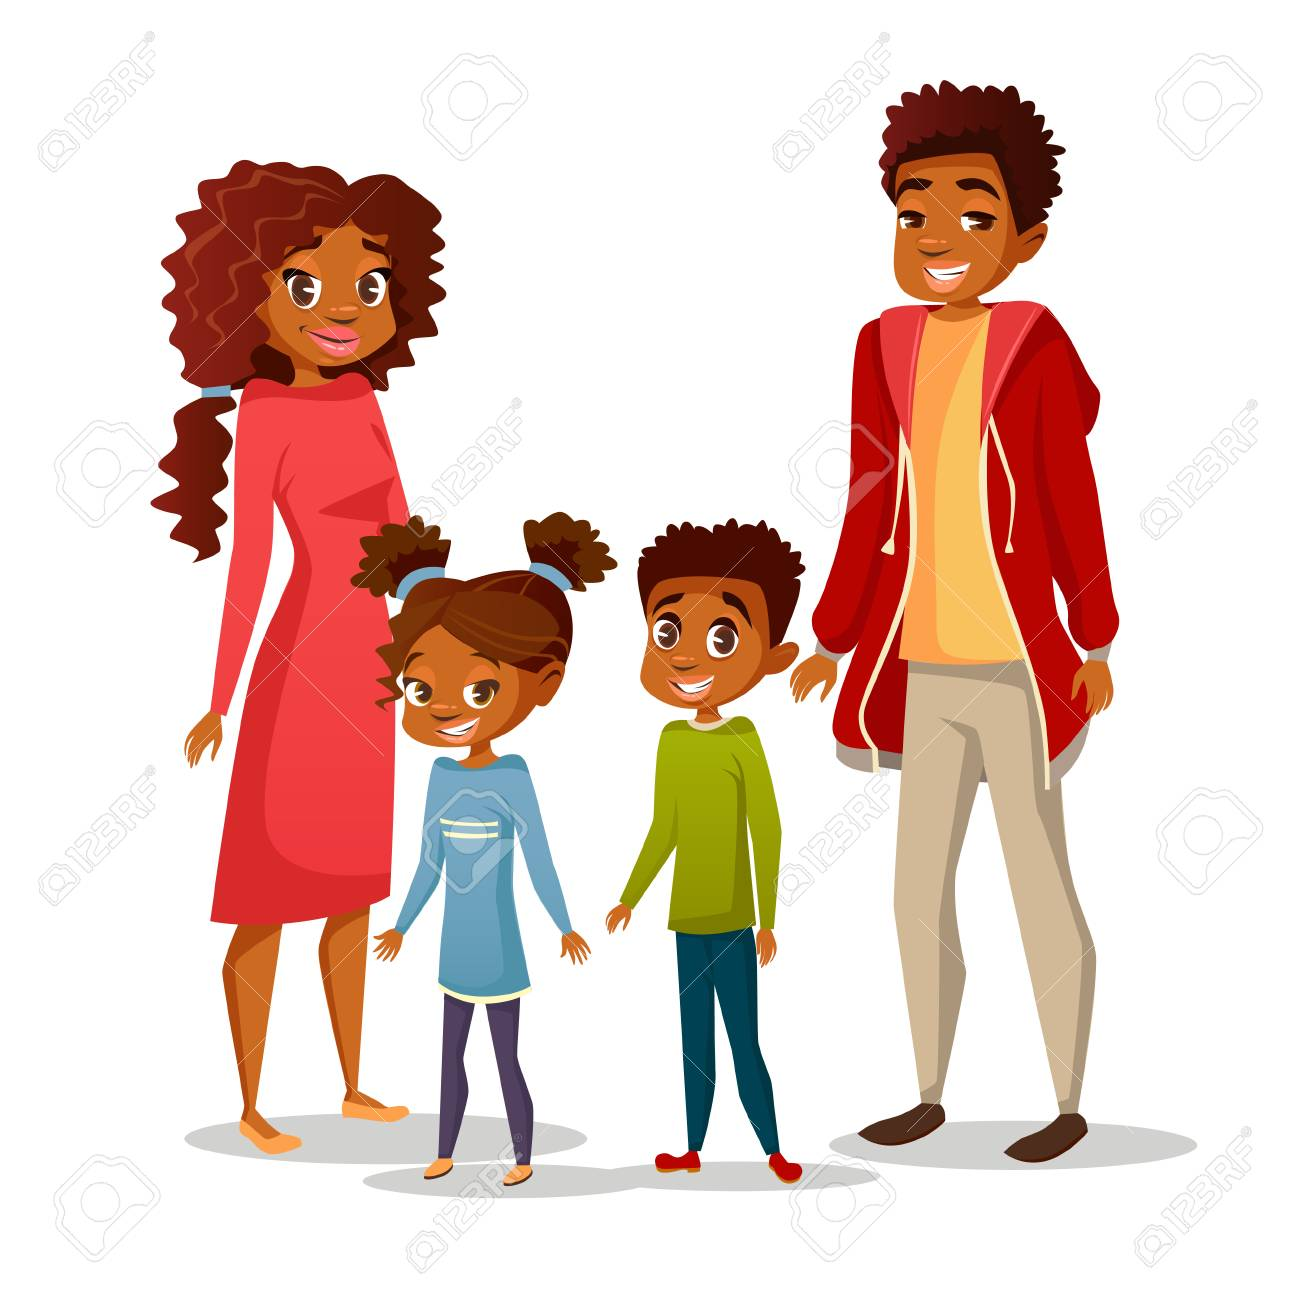 Afro American black family in casual clothing vector cartoon flat illustration. Happy father and mother parents, boy and girl children teens characters of African American nationality - 95981992